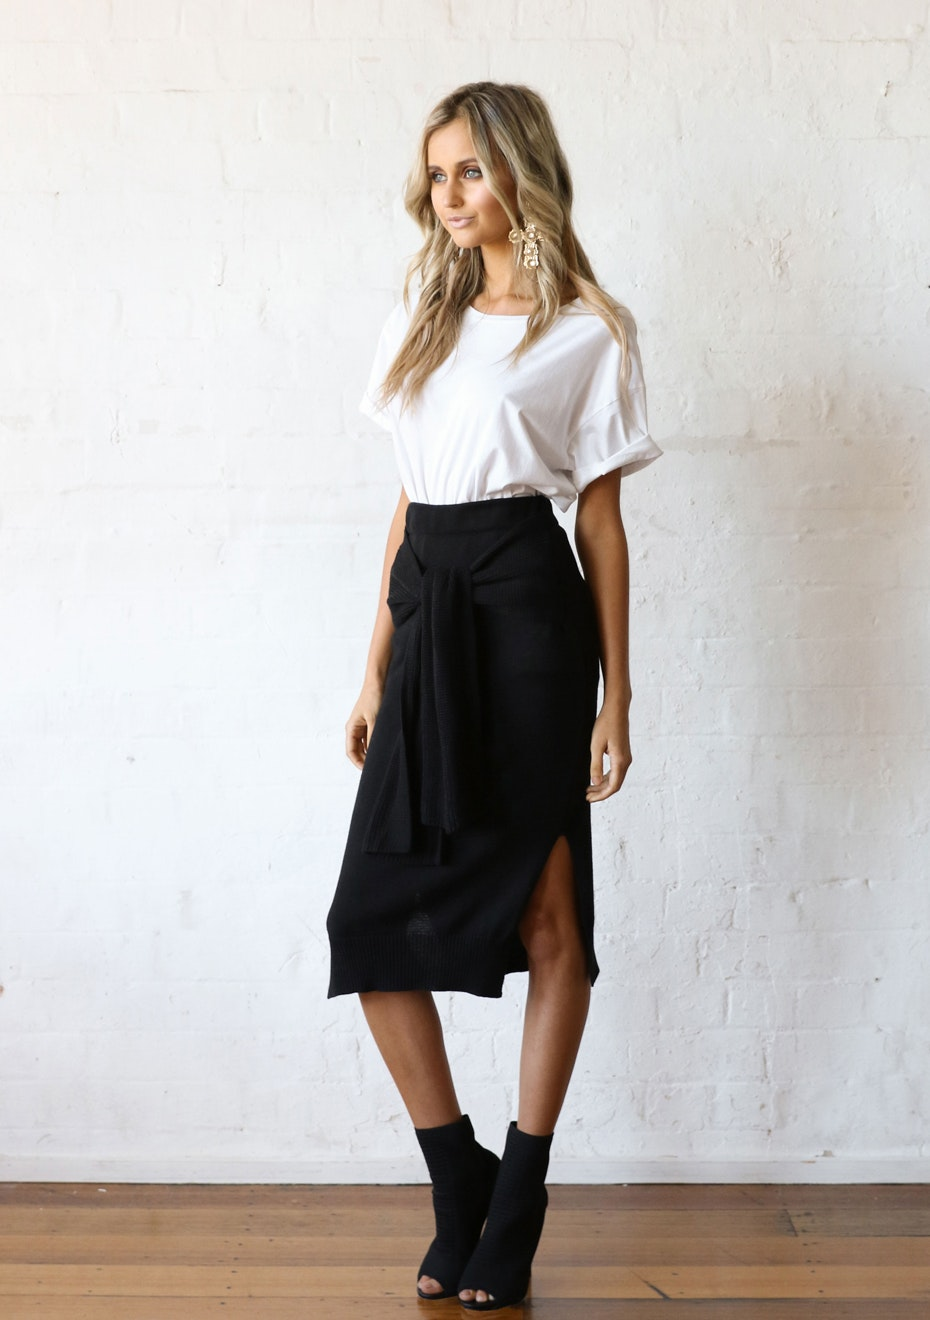 Madison - ROSIE TIE SKIRT - BLACK